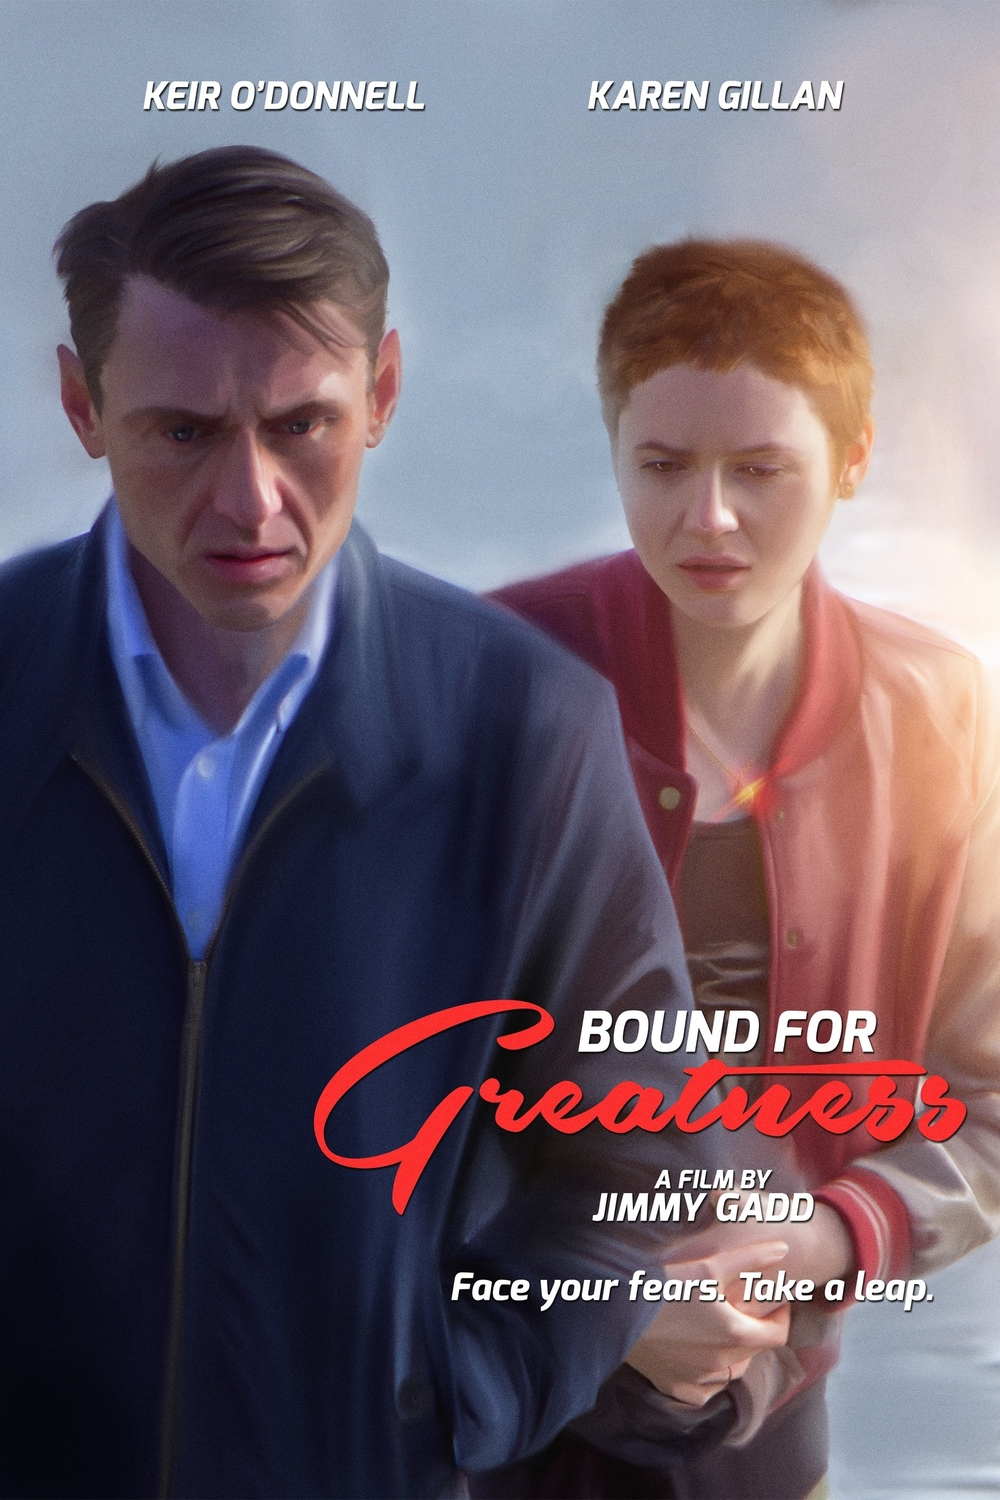 bound-for-greatness-festival-poster clean.jpg